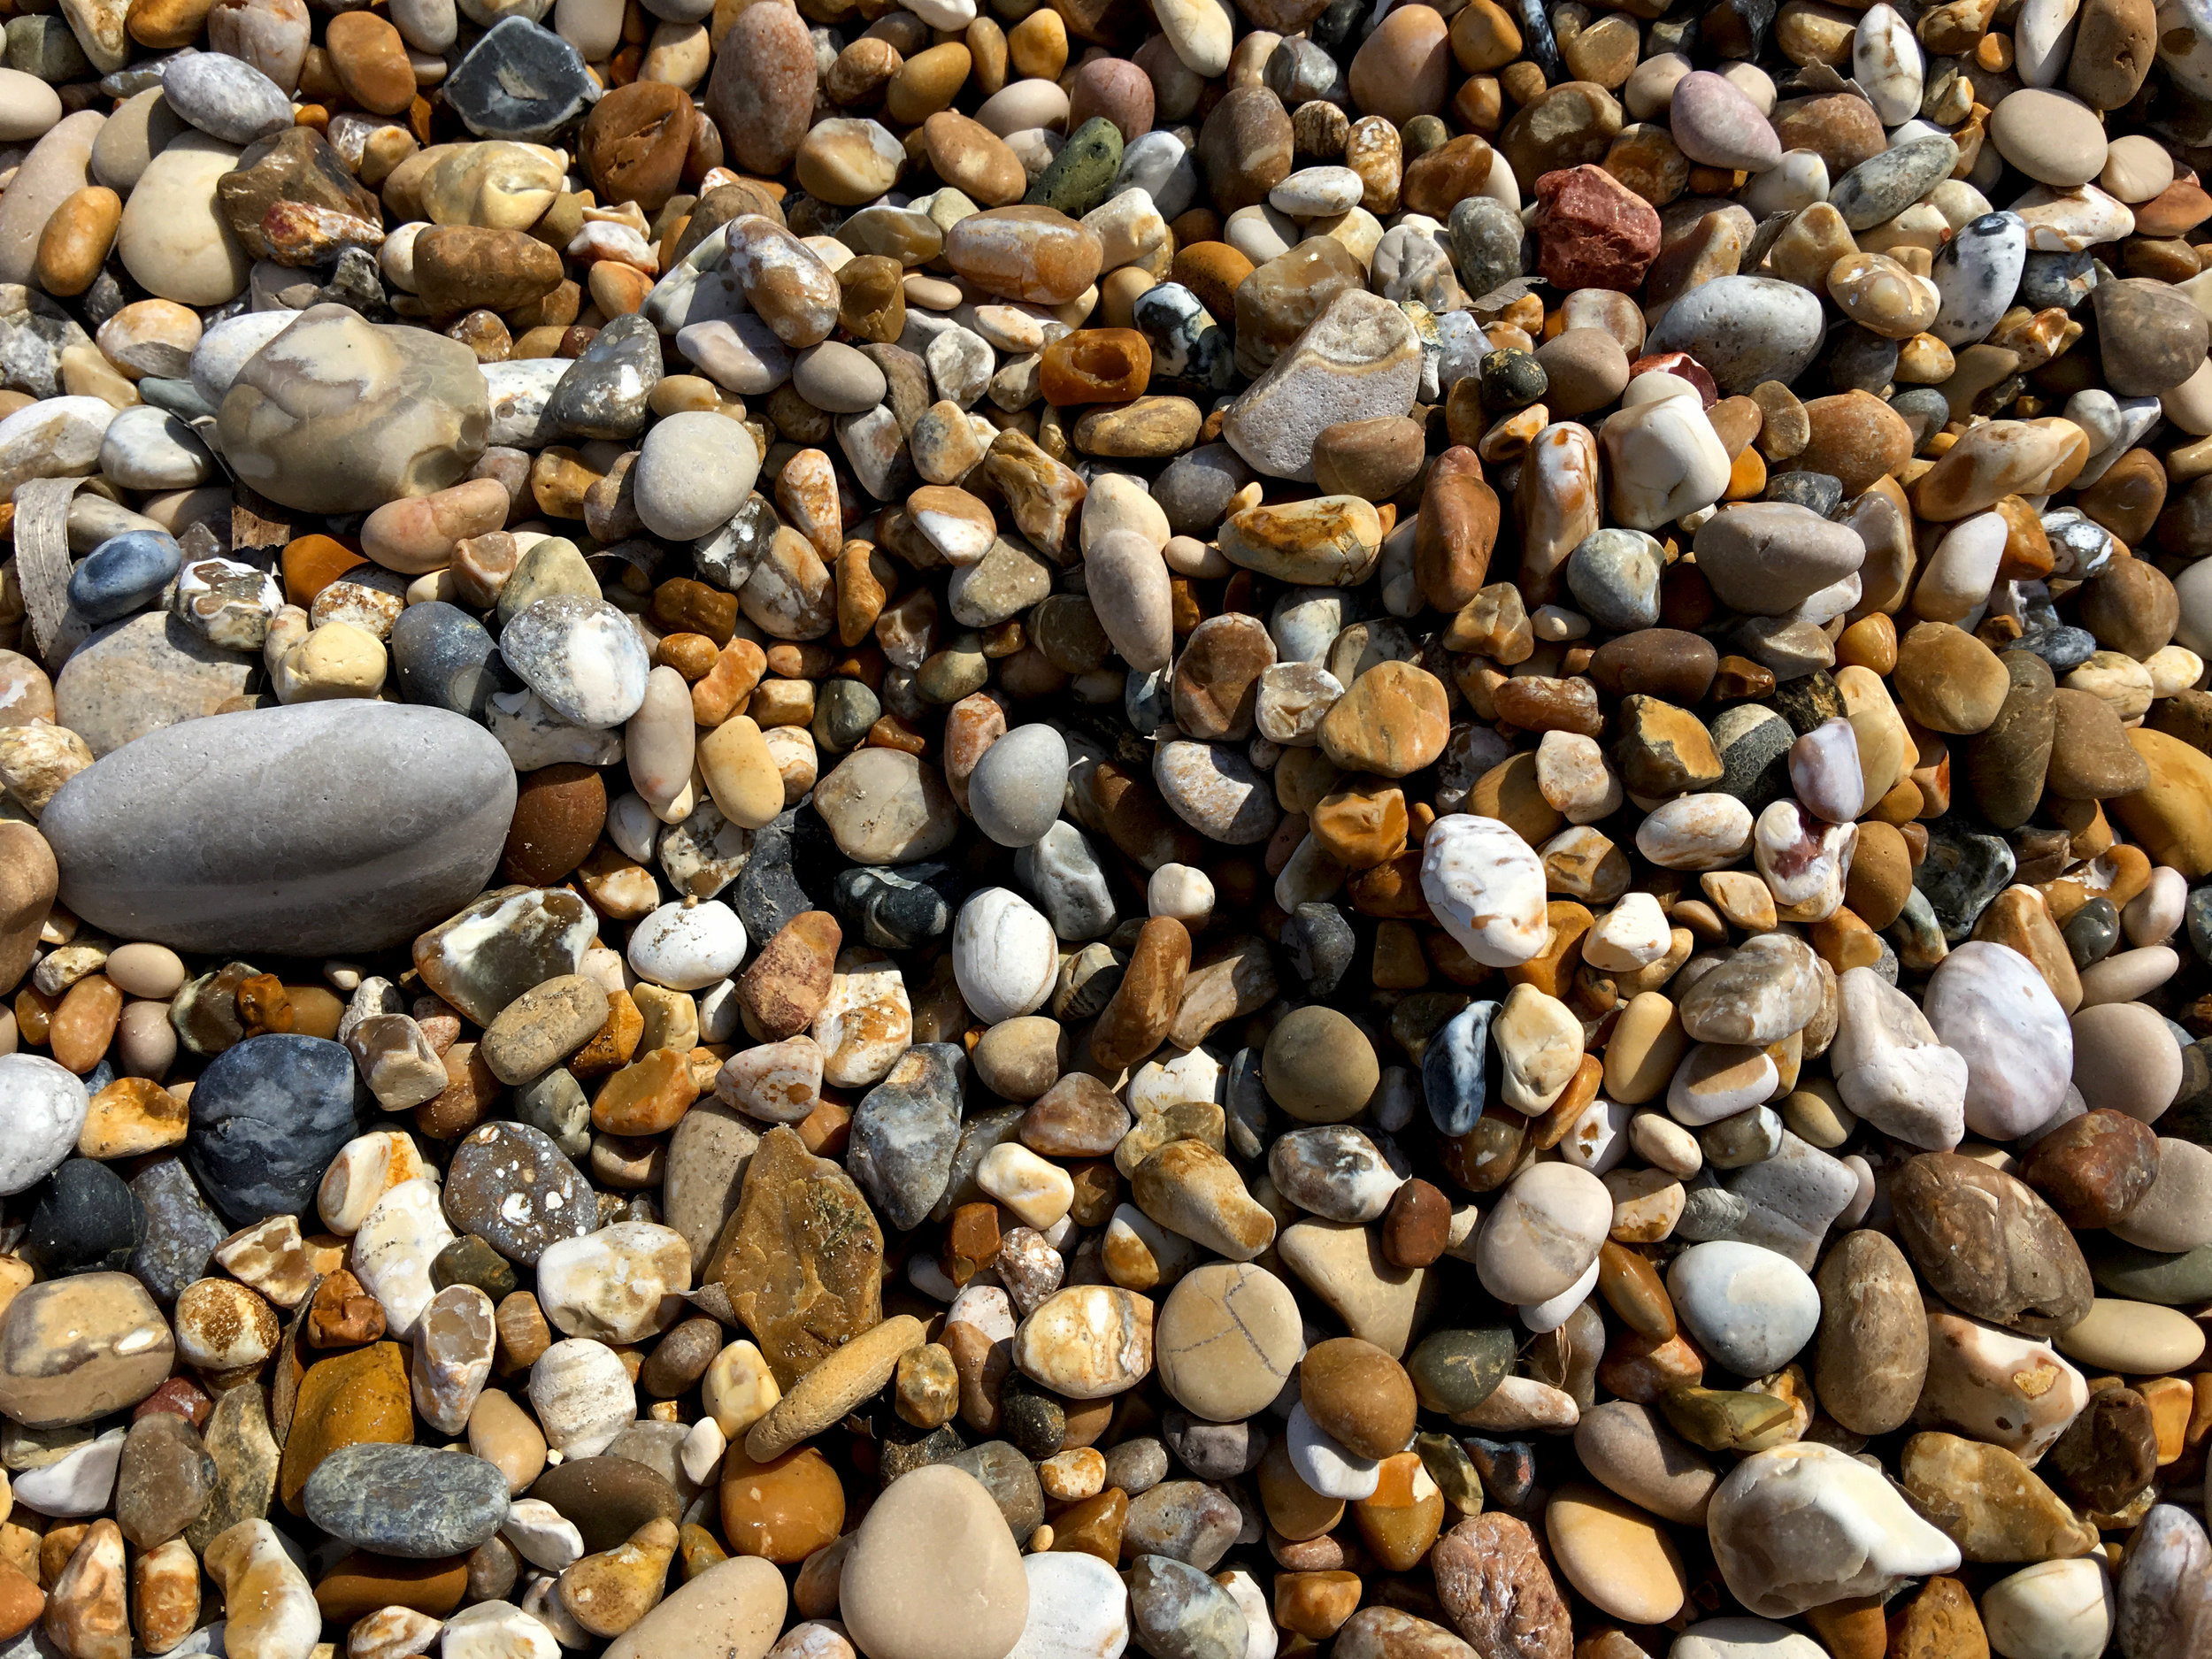 Pebble beaches may not be great for lying on, but they are beautiful.